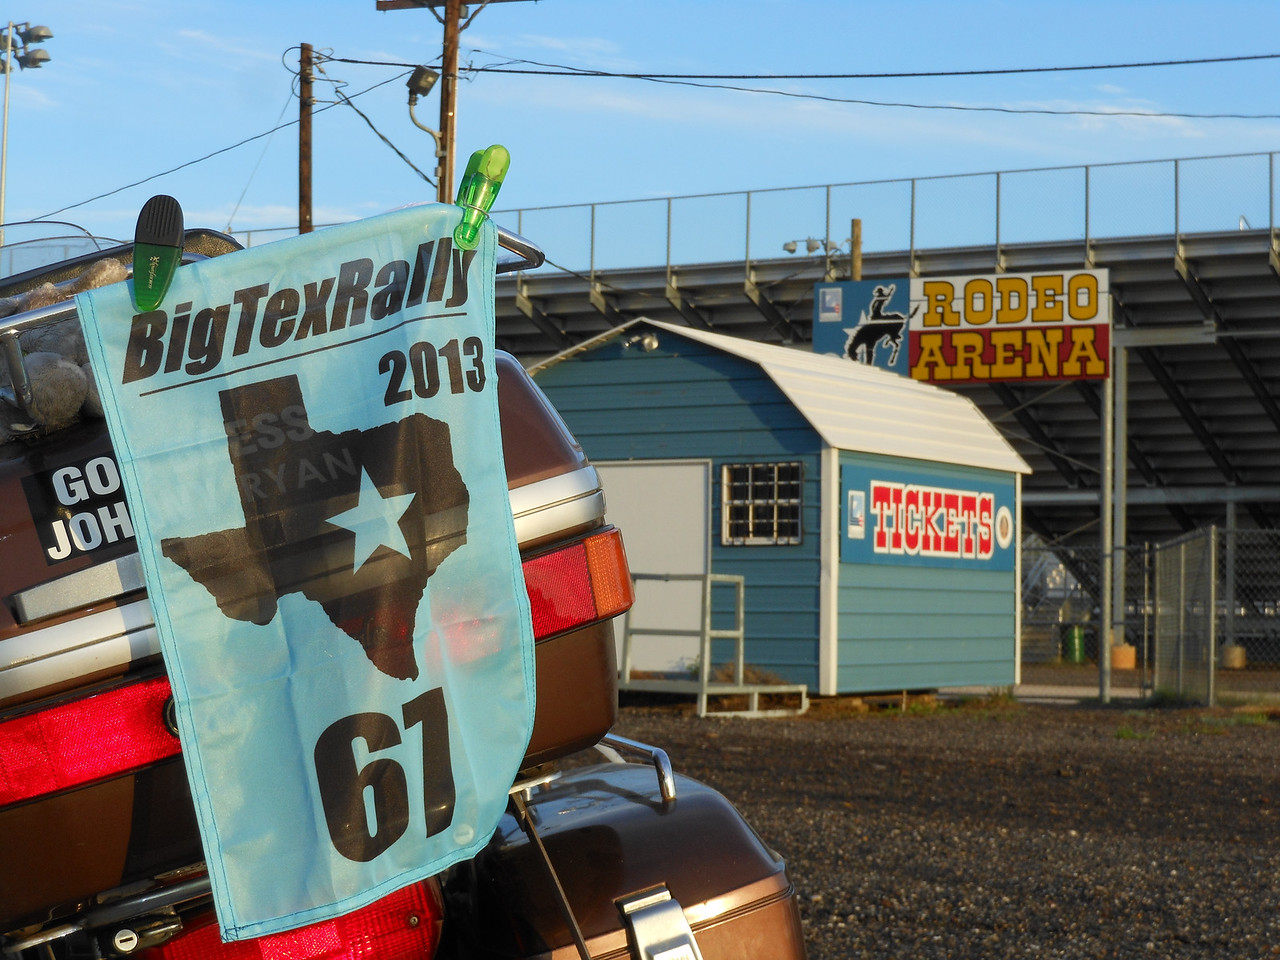 Texas Icon - A Rodeo Arena, this in Longview